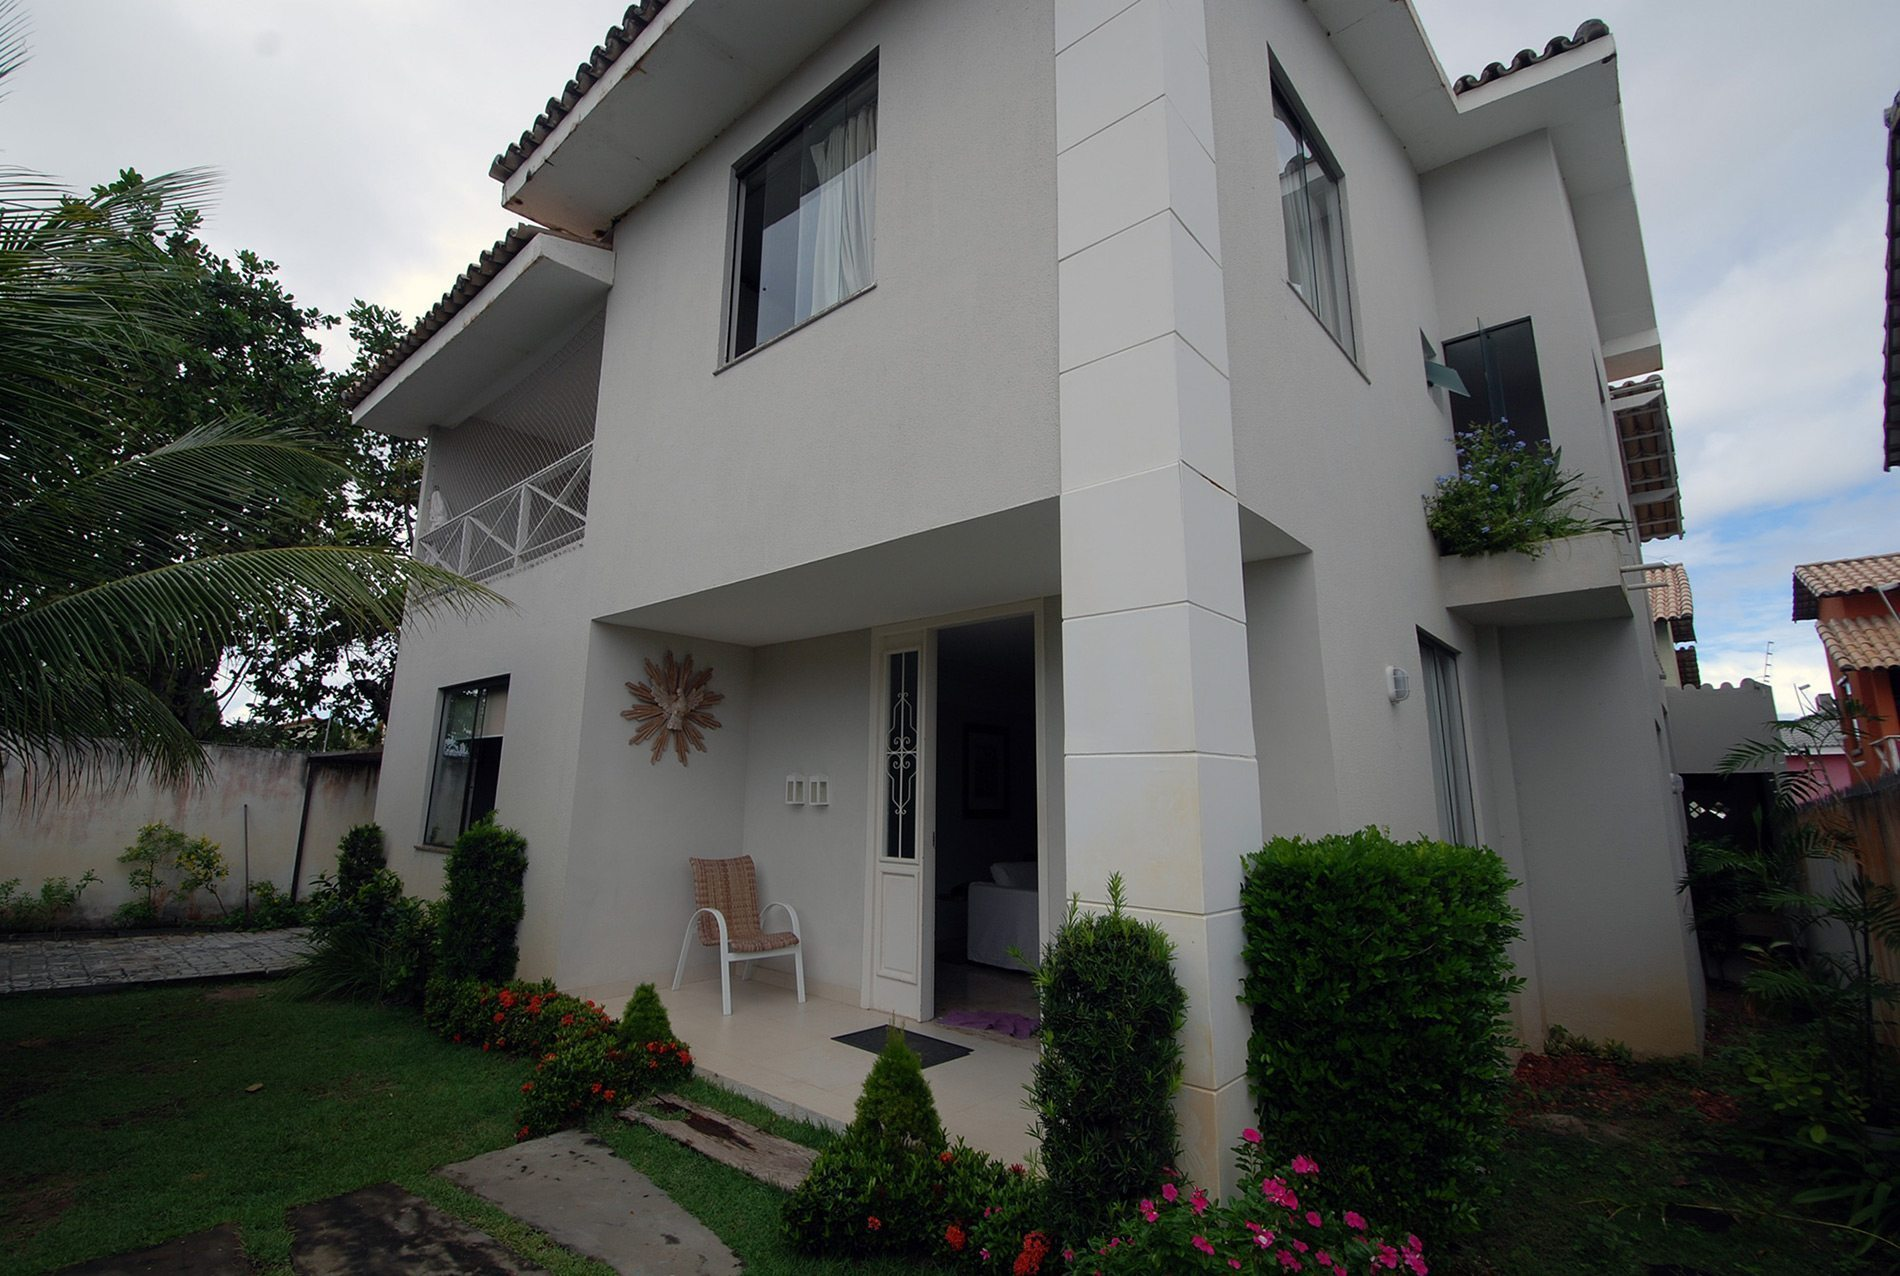 Excellent house with great finish for sale in Buraquinho